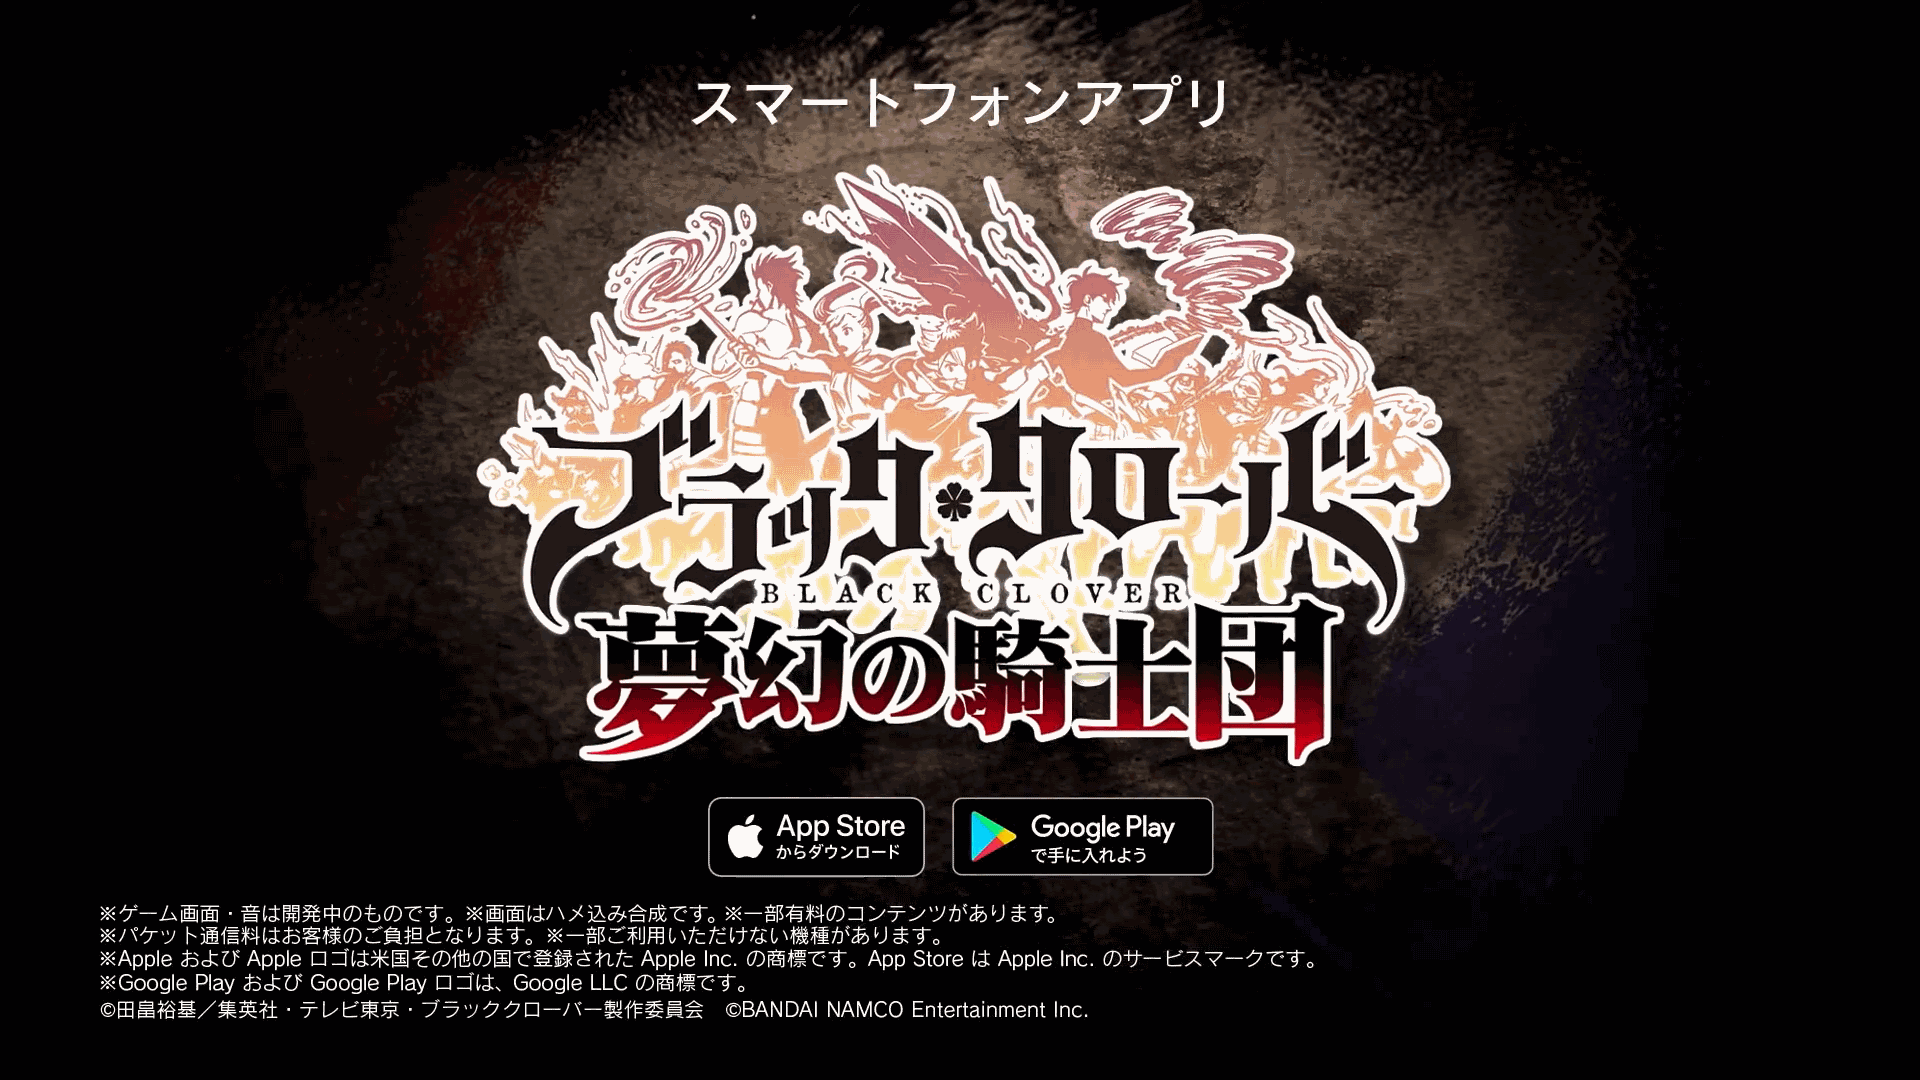 Mobile: Black Clover: Infinite Knights available now in Japan